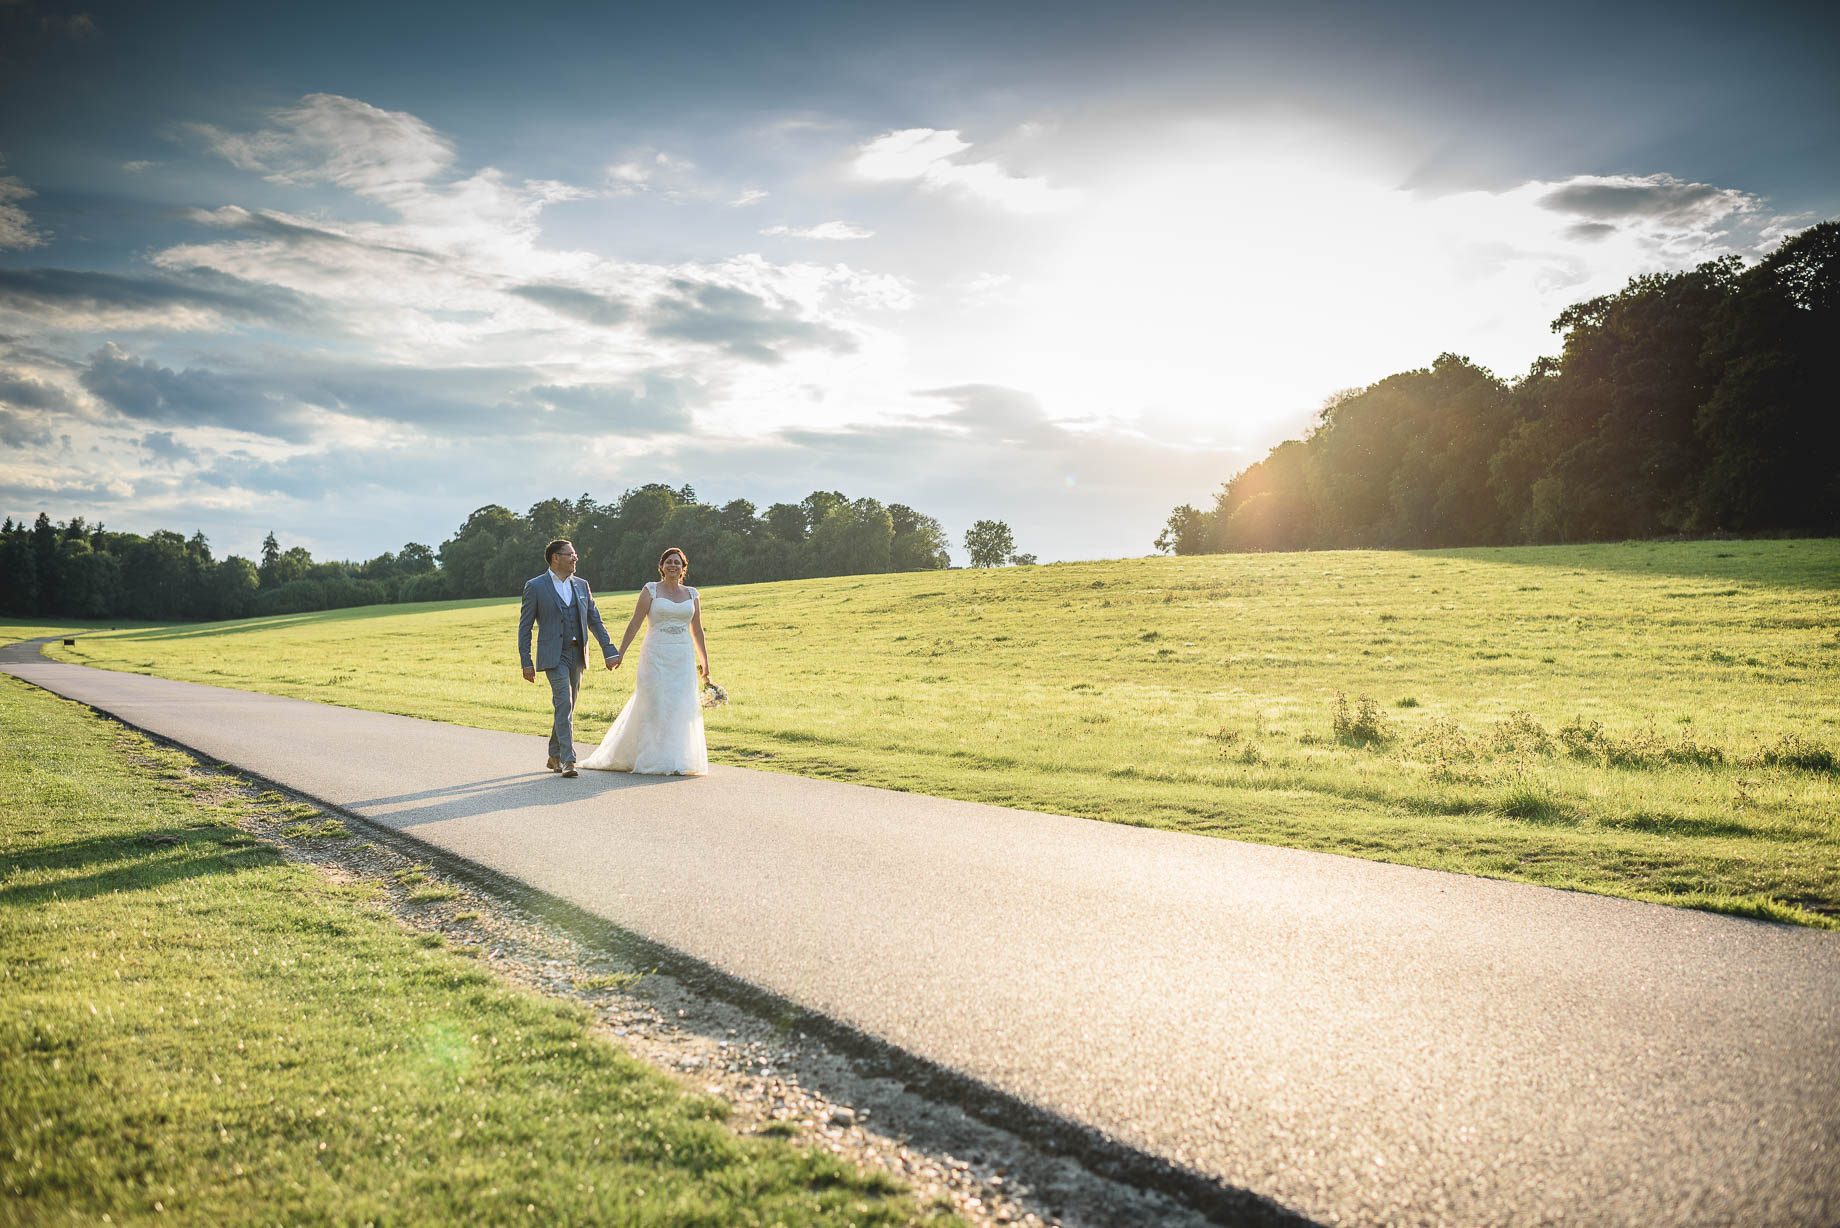 Luton Hoo wedding photography - Lauren + Gem